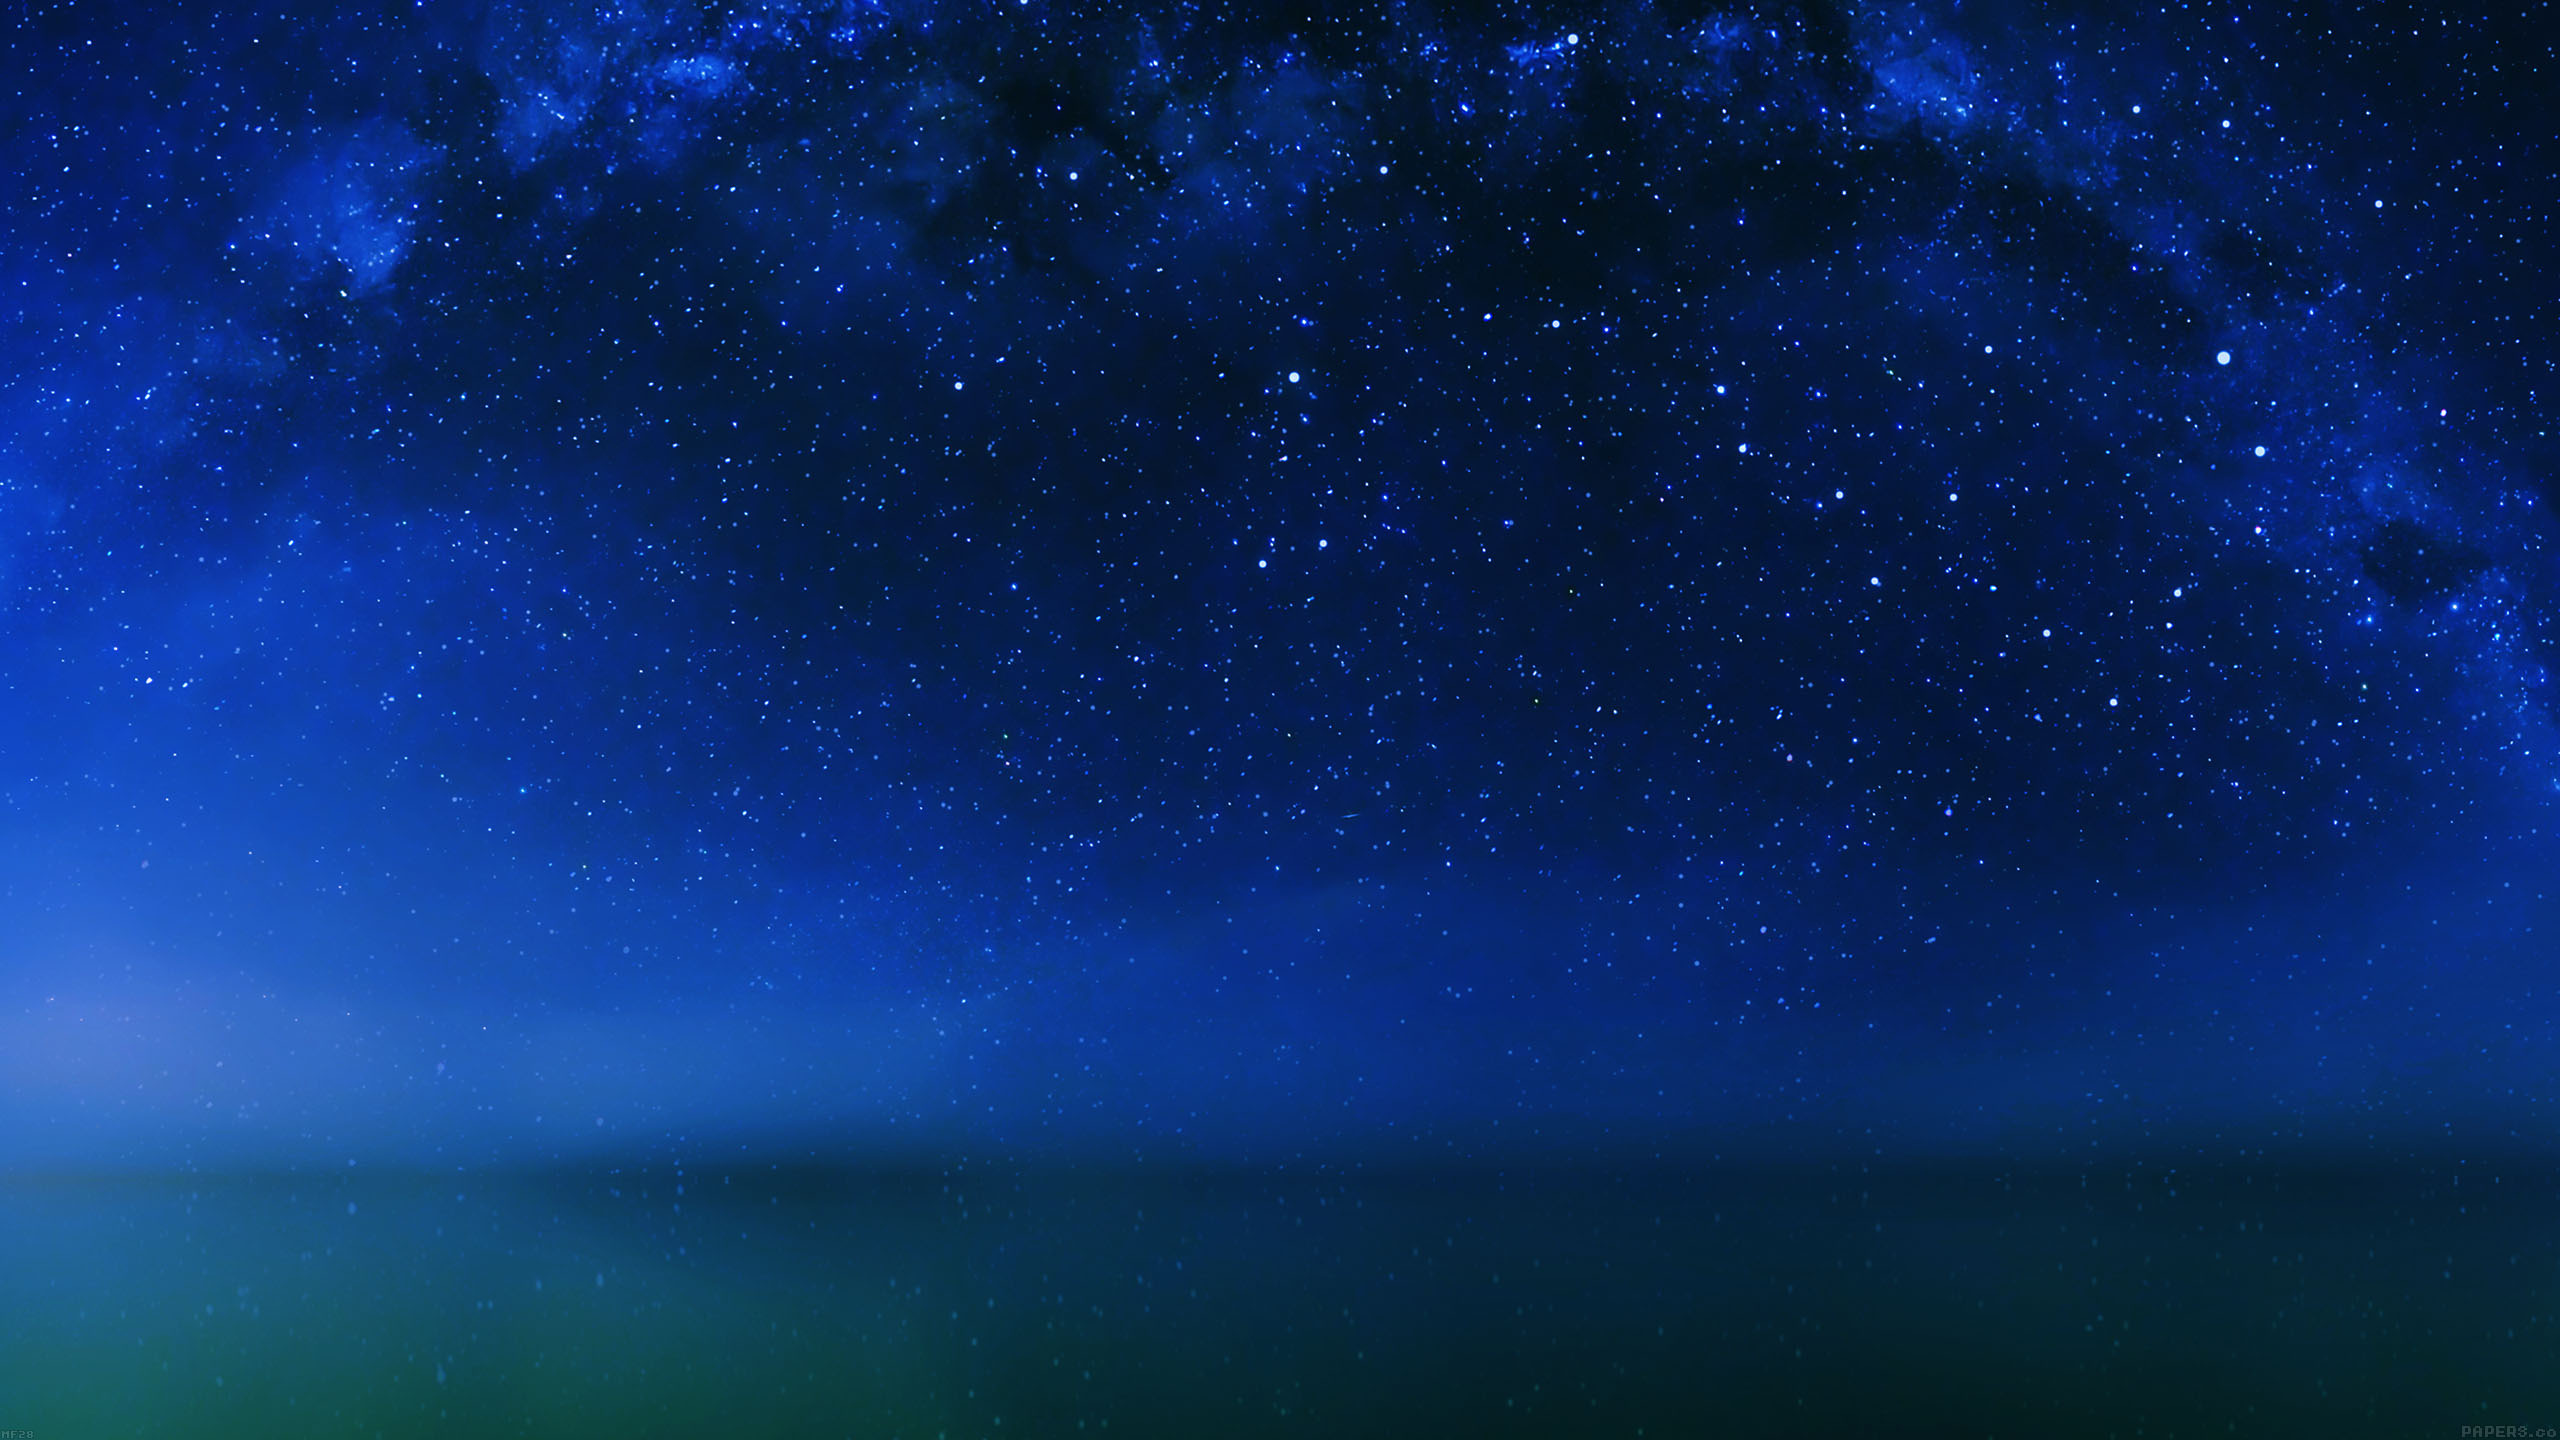 Car Wallpaper Mf28 Cosmos Night Live Lake Space Starry Papers Co